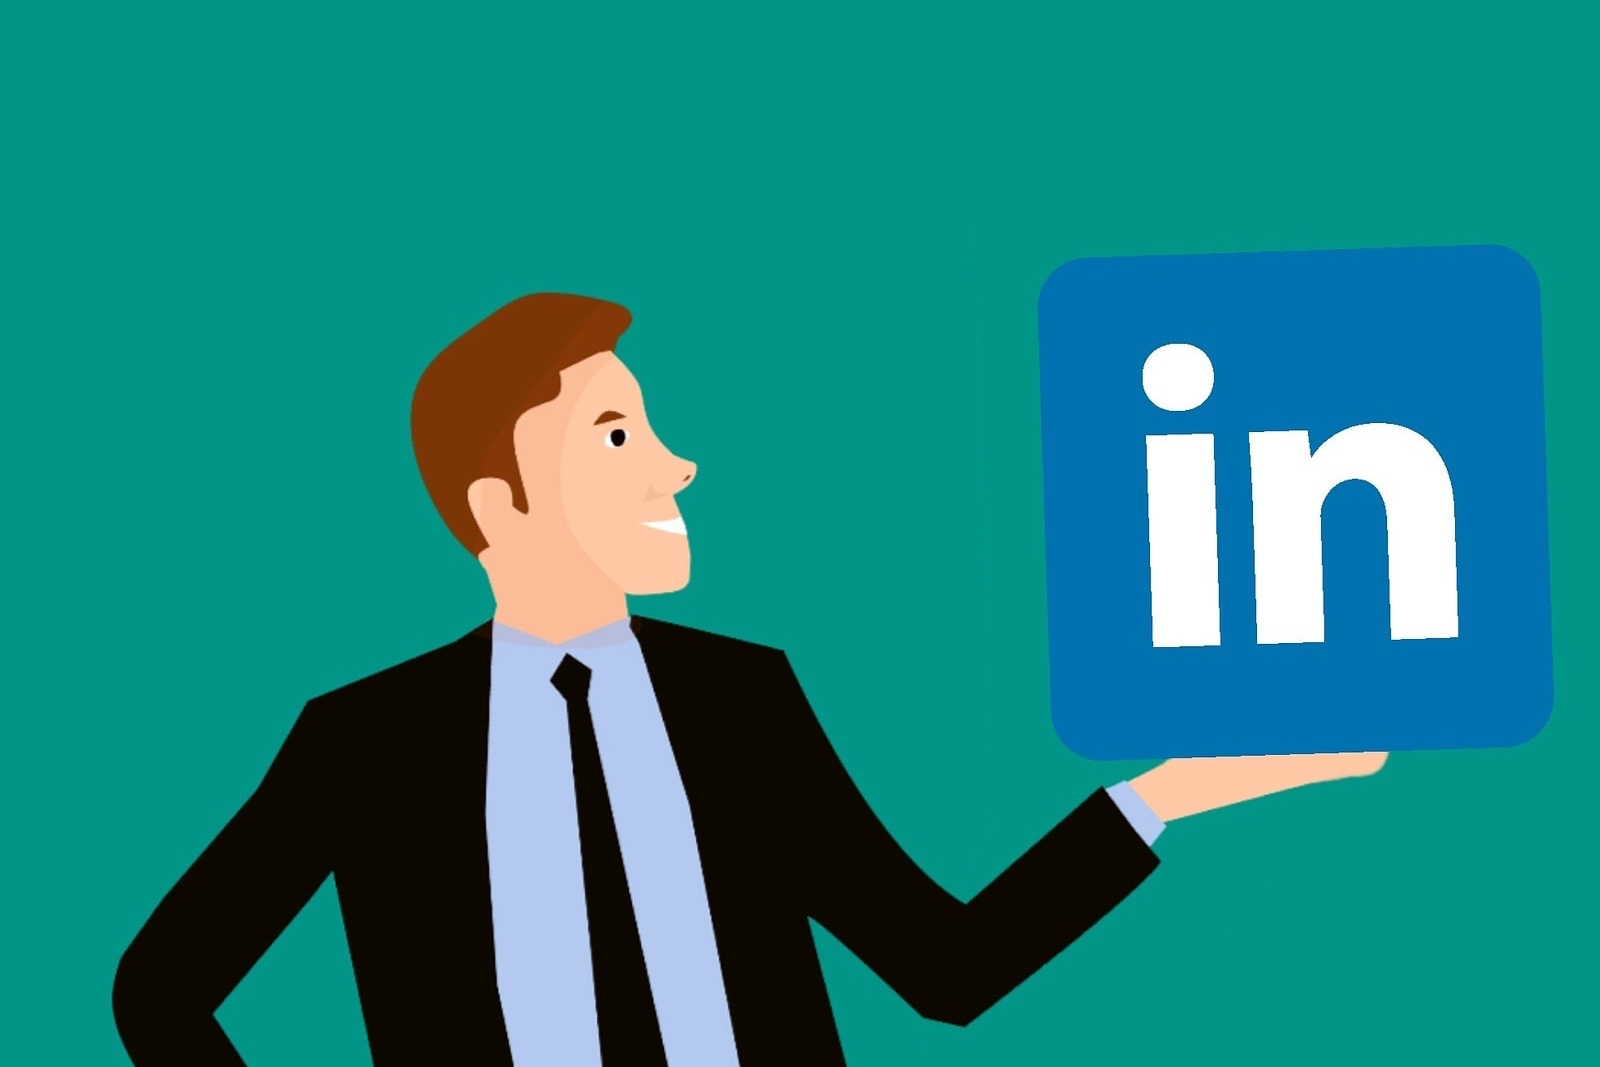 LinkedIn: Office Experts Group. Office Experts. Excel Experts. Access Experts. Word Experts. PowerPoint Experts. Microsoft Office and Microsoft Technology Consulting. Analysis. Design. Development. Migration. Upgrades.